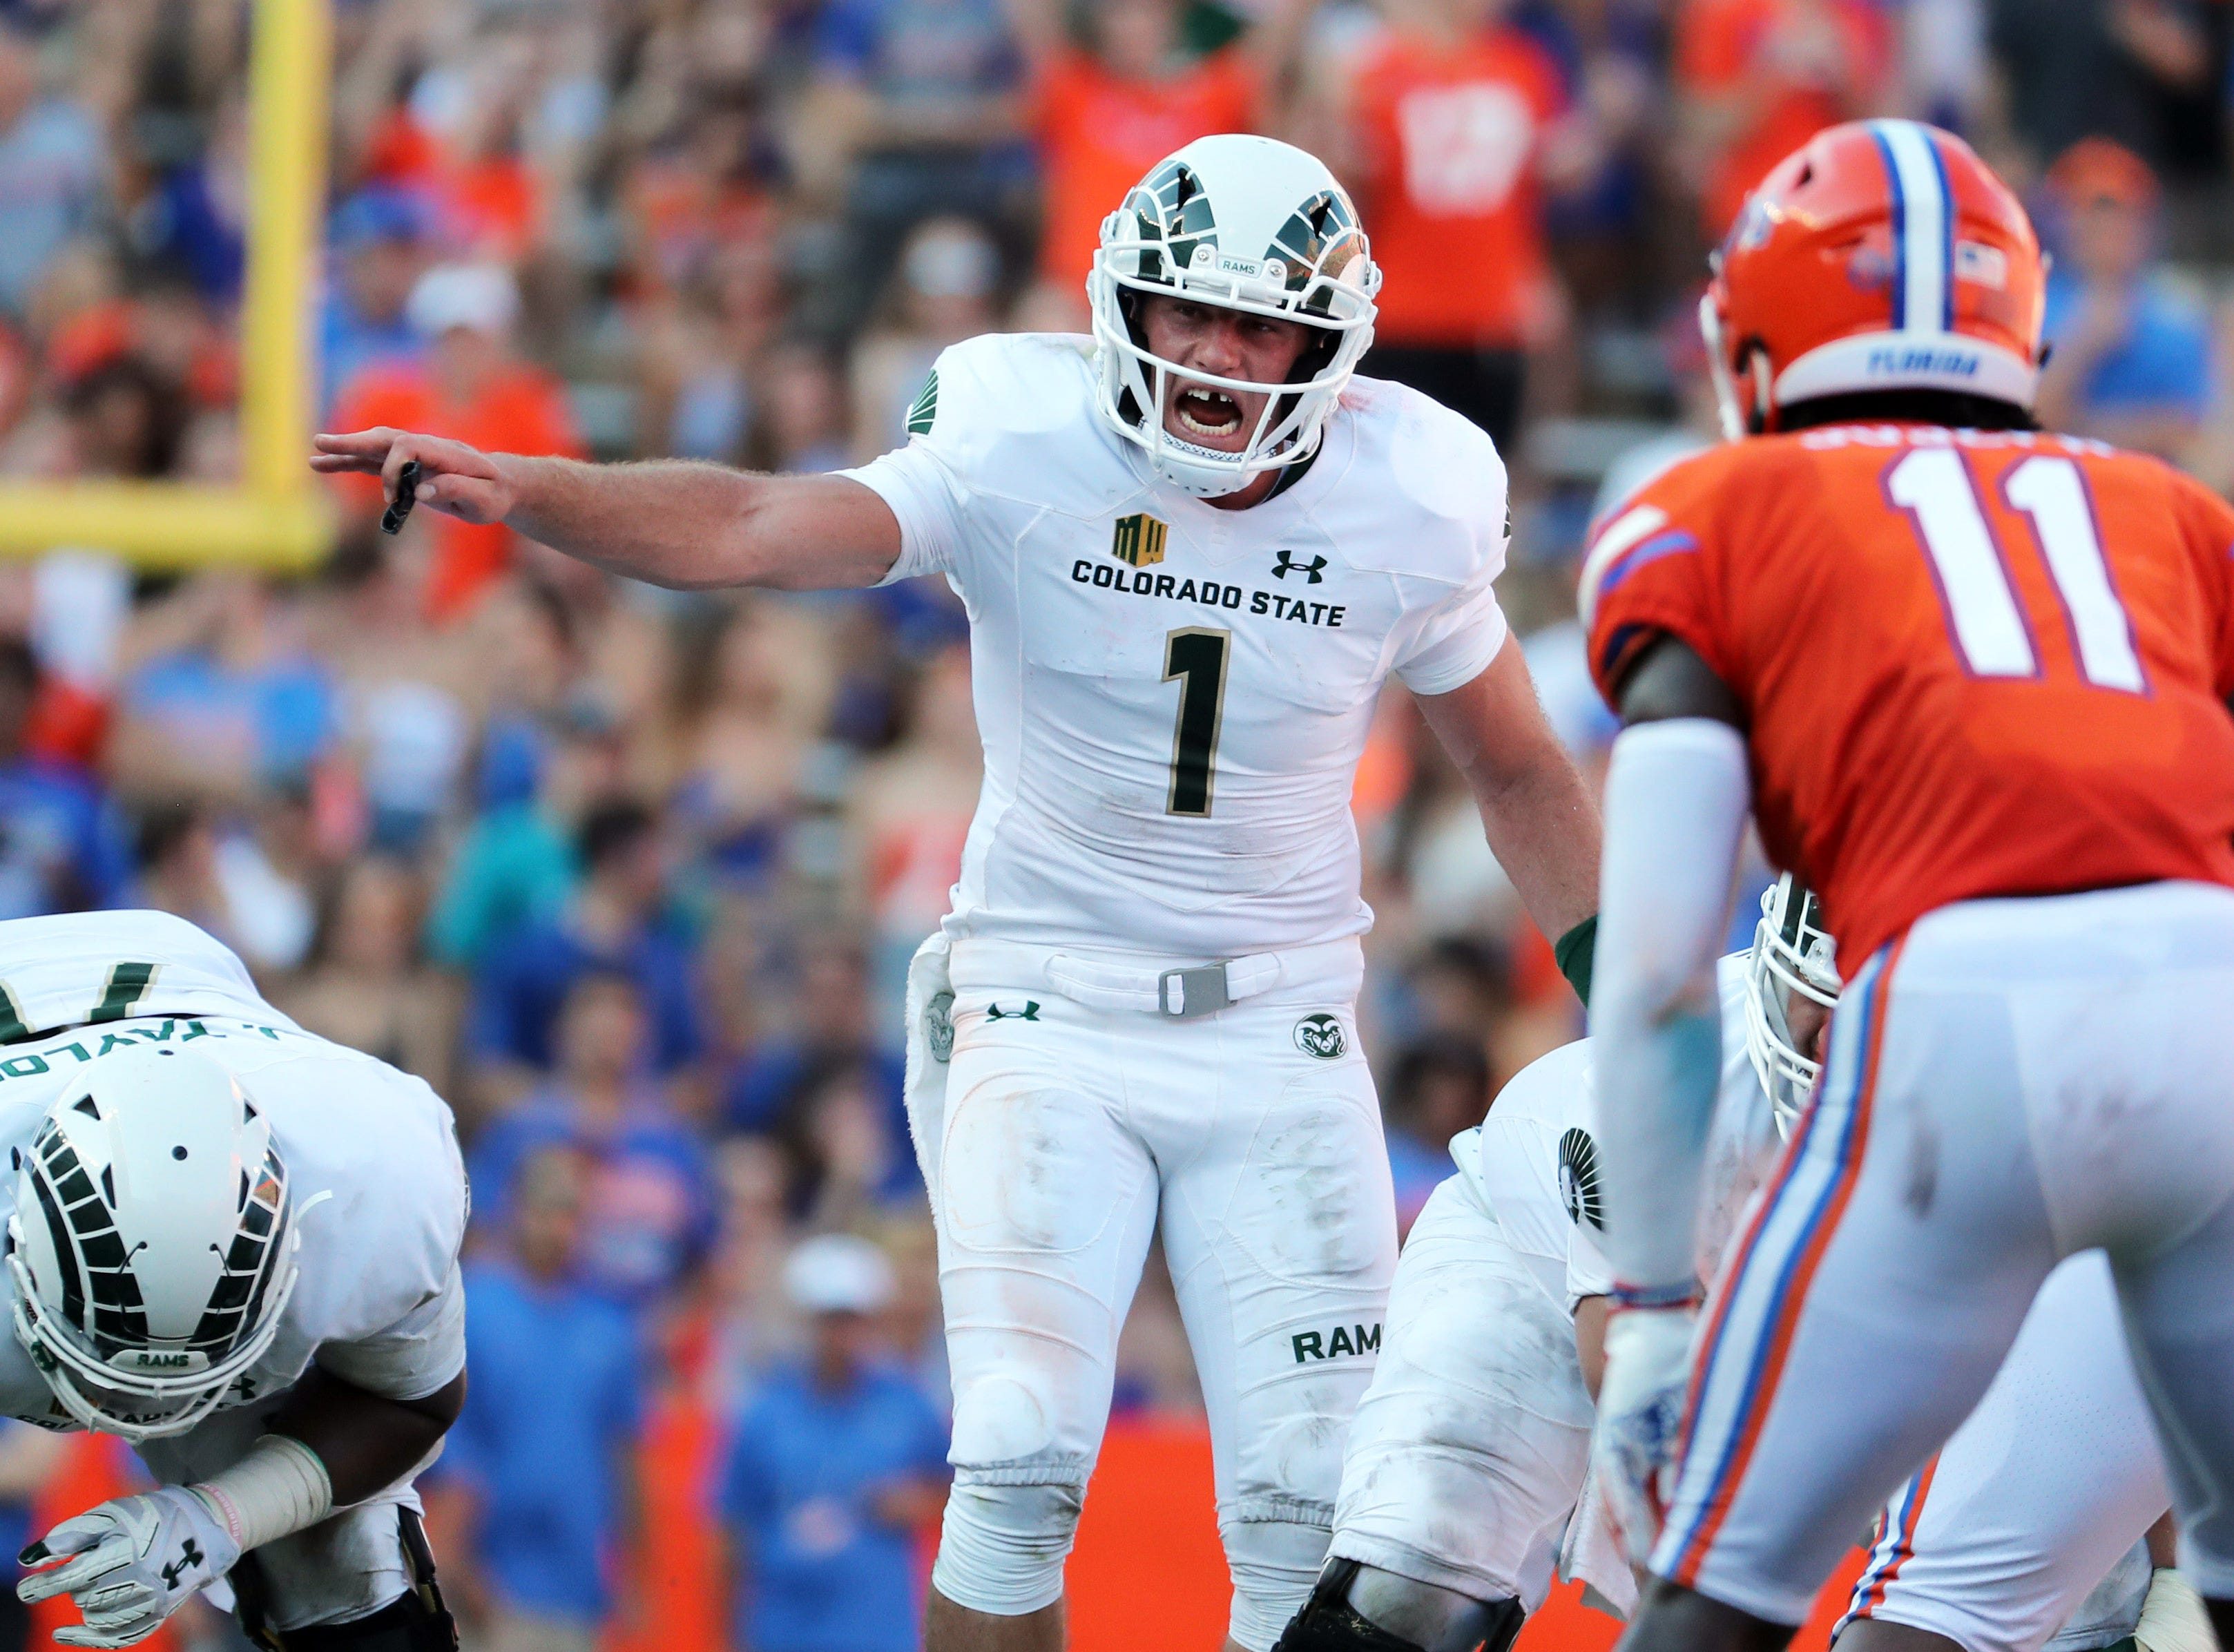 Sep 15, 2018; Gainesville, FL, USA; Colorado State Rams quarterback K.J. Carta-Samuels (1) reacts and points against the Florida Gators during the second quarter at Ben Hill Griffin Stadium. Mandatory Credit: Kim Klement-USA TODAY Sports